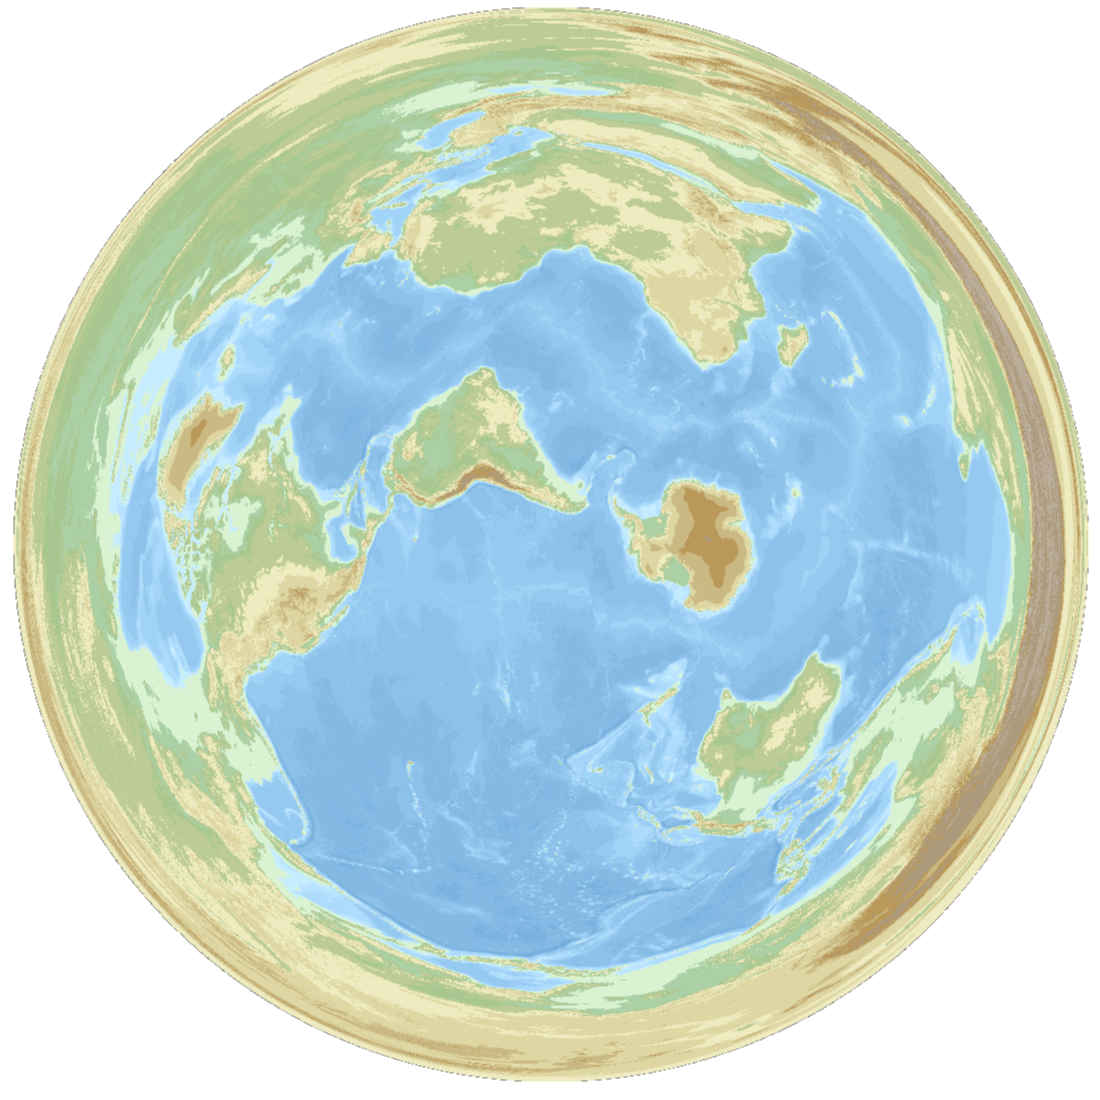 FileTopographic Map Of World Oceanpng Wikimedia Commons - Map of world oceans